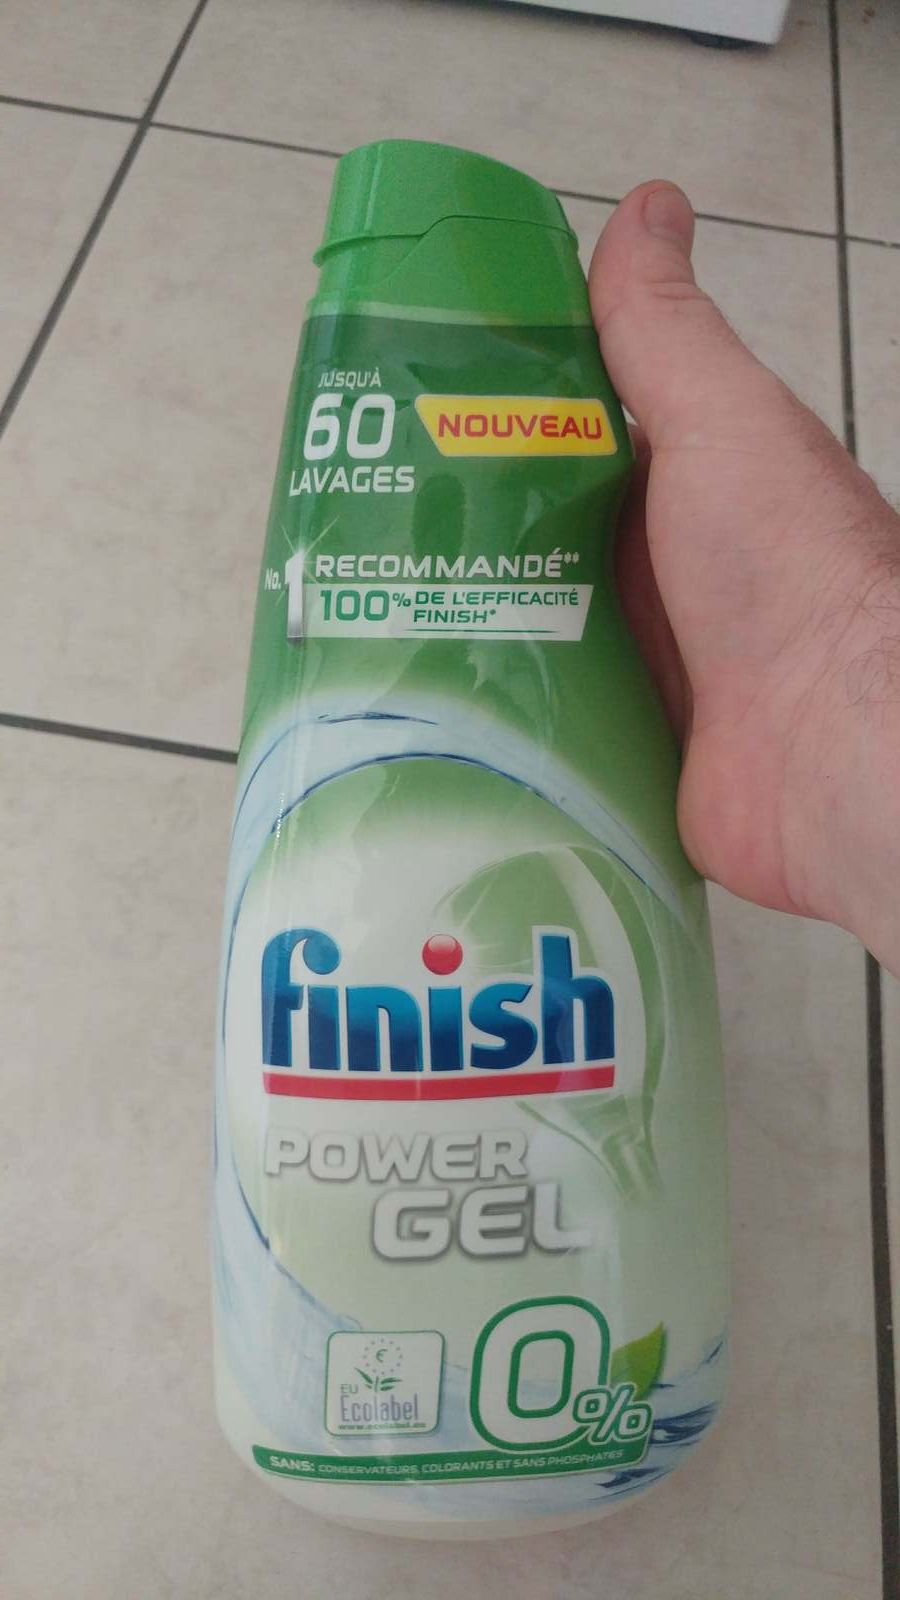 Finish power gel 0% écolabel